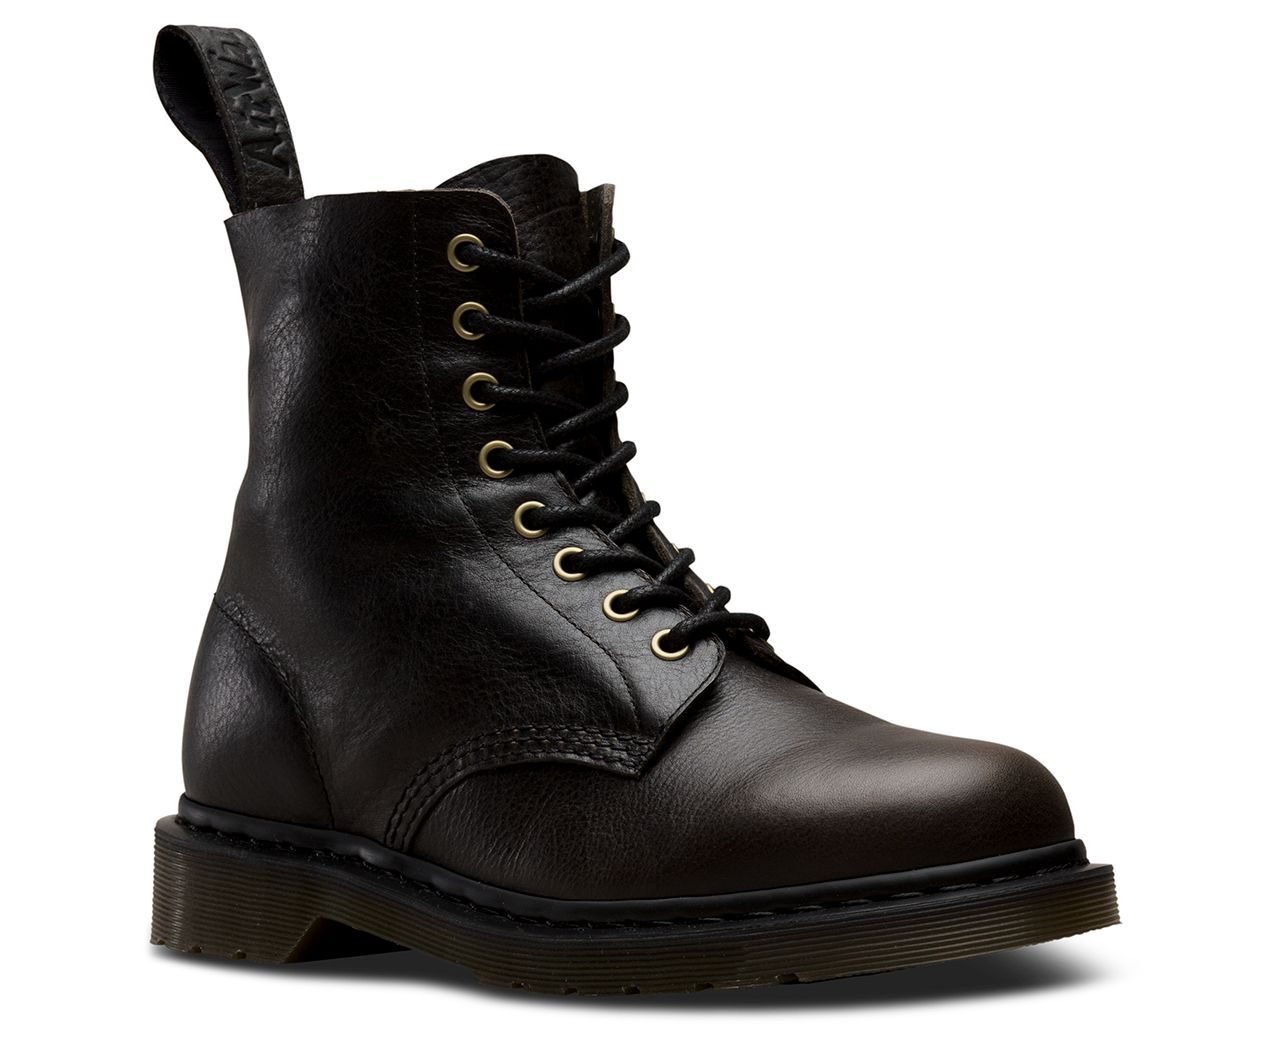 Dr martens 1460 pascal harvest in 2019 | Boots, Denim boots